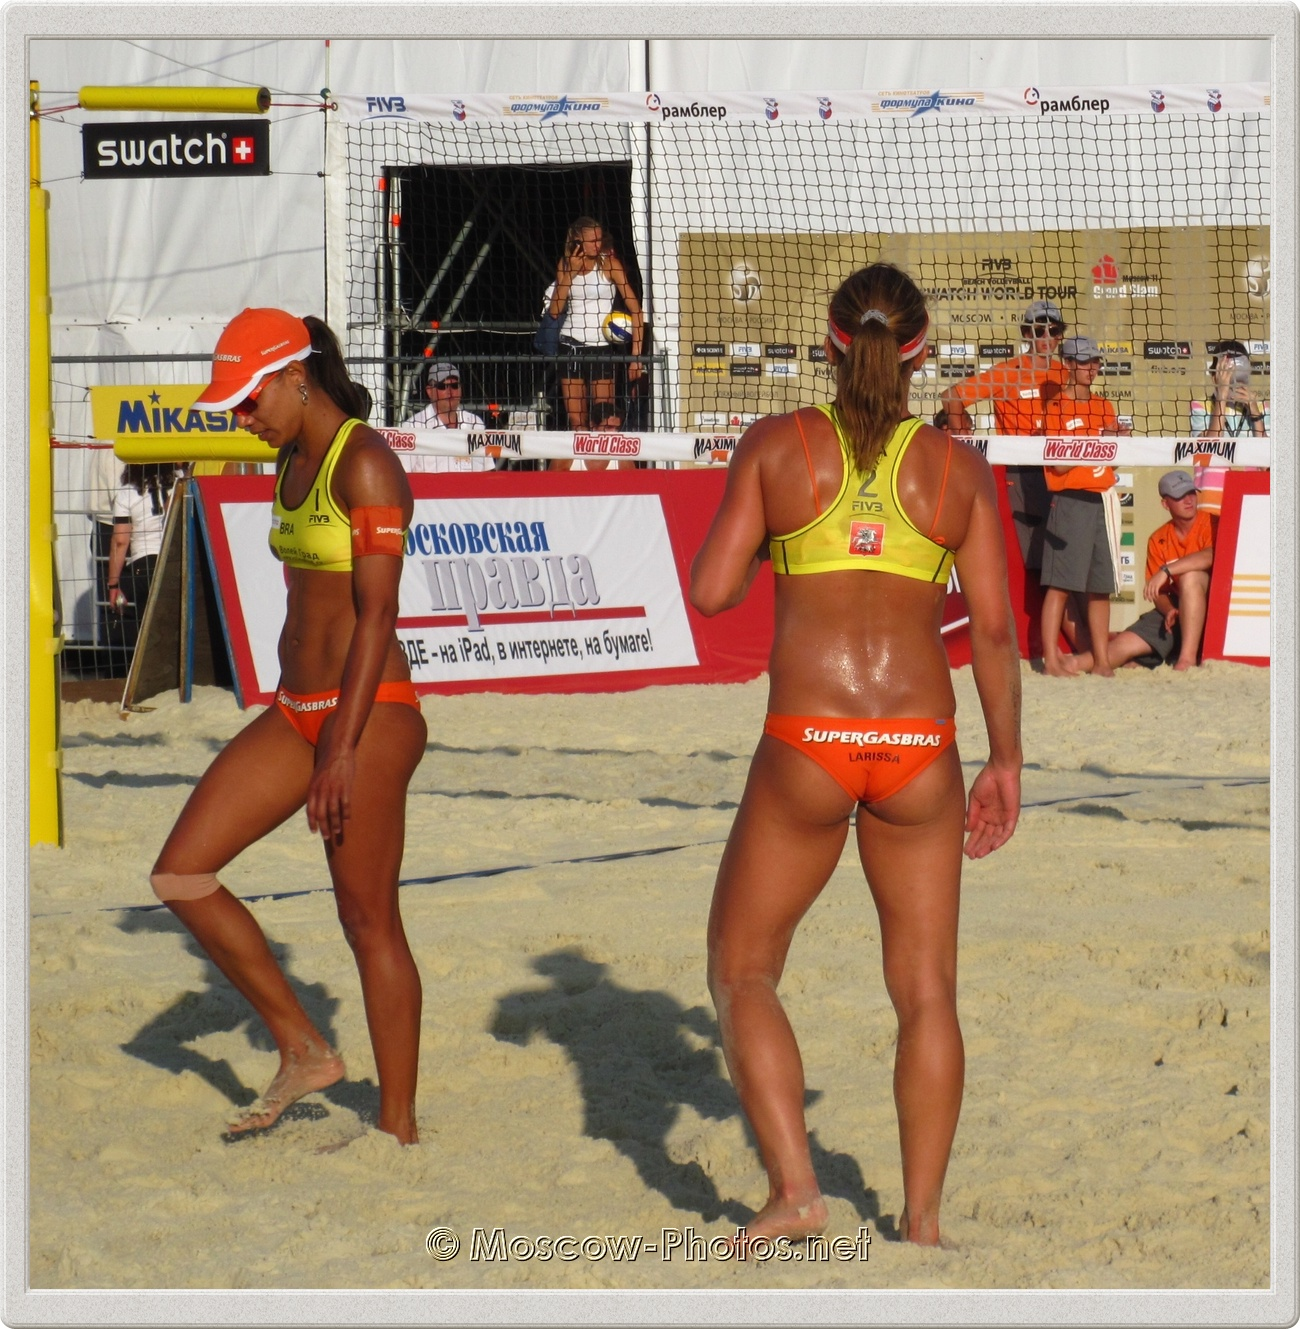 Beach Volleyball Players Juliana Felisberta Da Silva & Larissa Franca